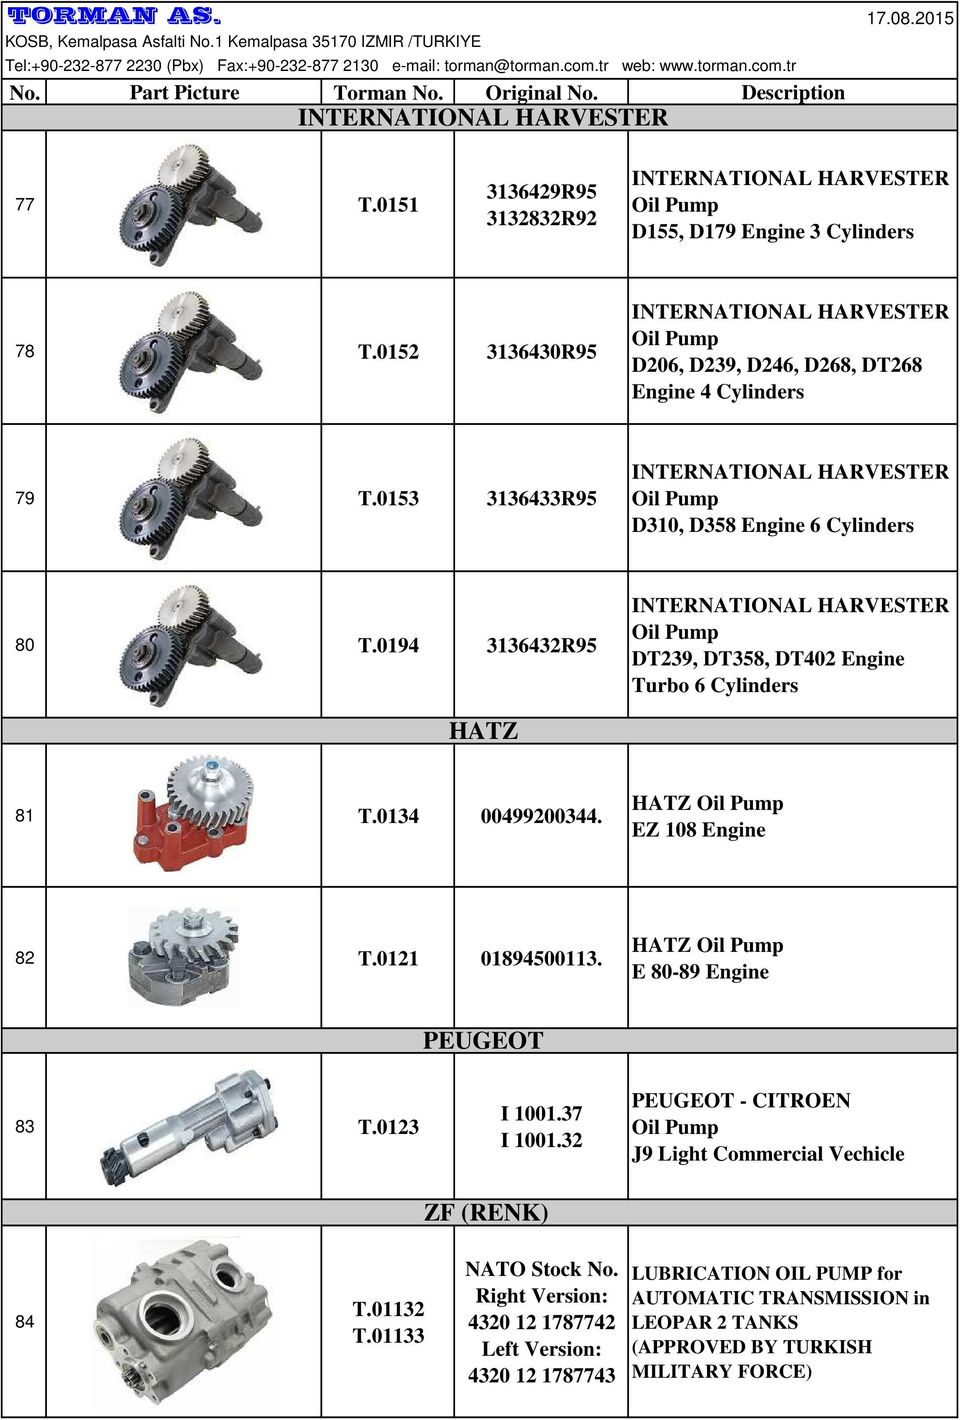 0194 3136432R95 INTERNATIONAL HARVESTER DT239, DT358, DT402 Engine Turbo 6 Cylinders HATZ 81 T.0134 00499200344. HATZ EZ 108 Engine 82 T.0121 01894500113. HATZ E 80-89 Engine PEUGEOT 83 T.